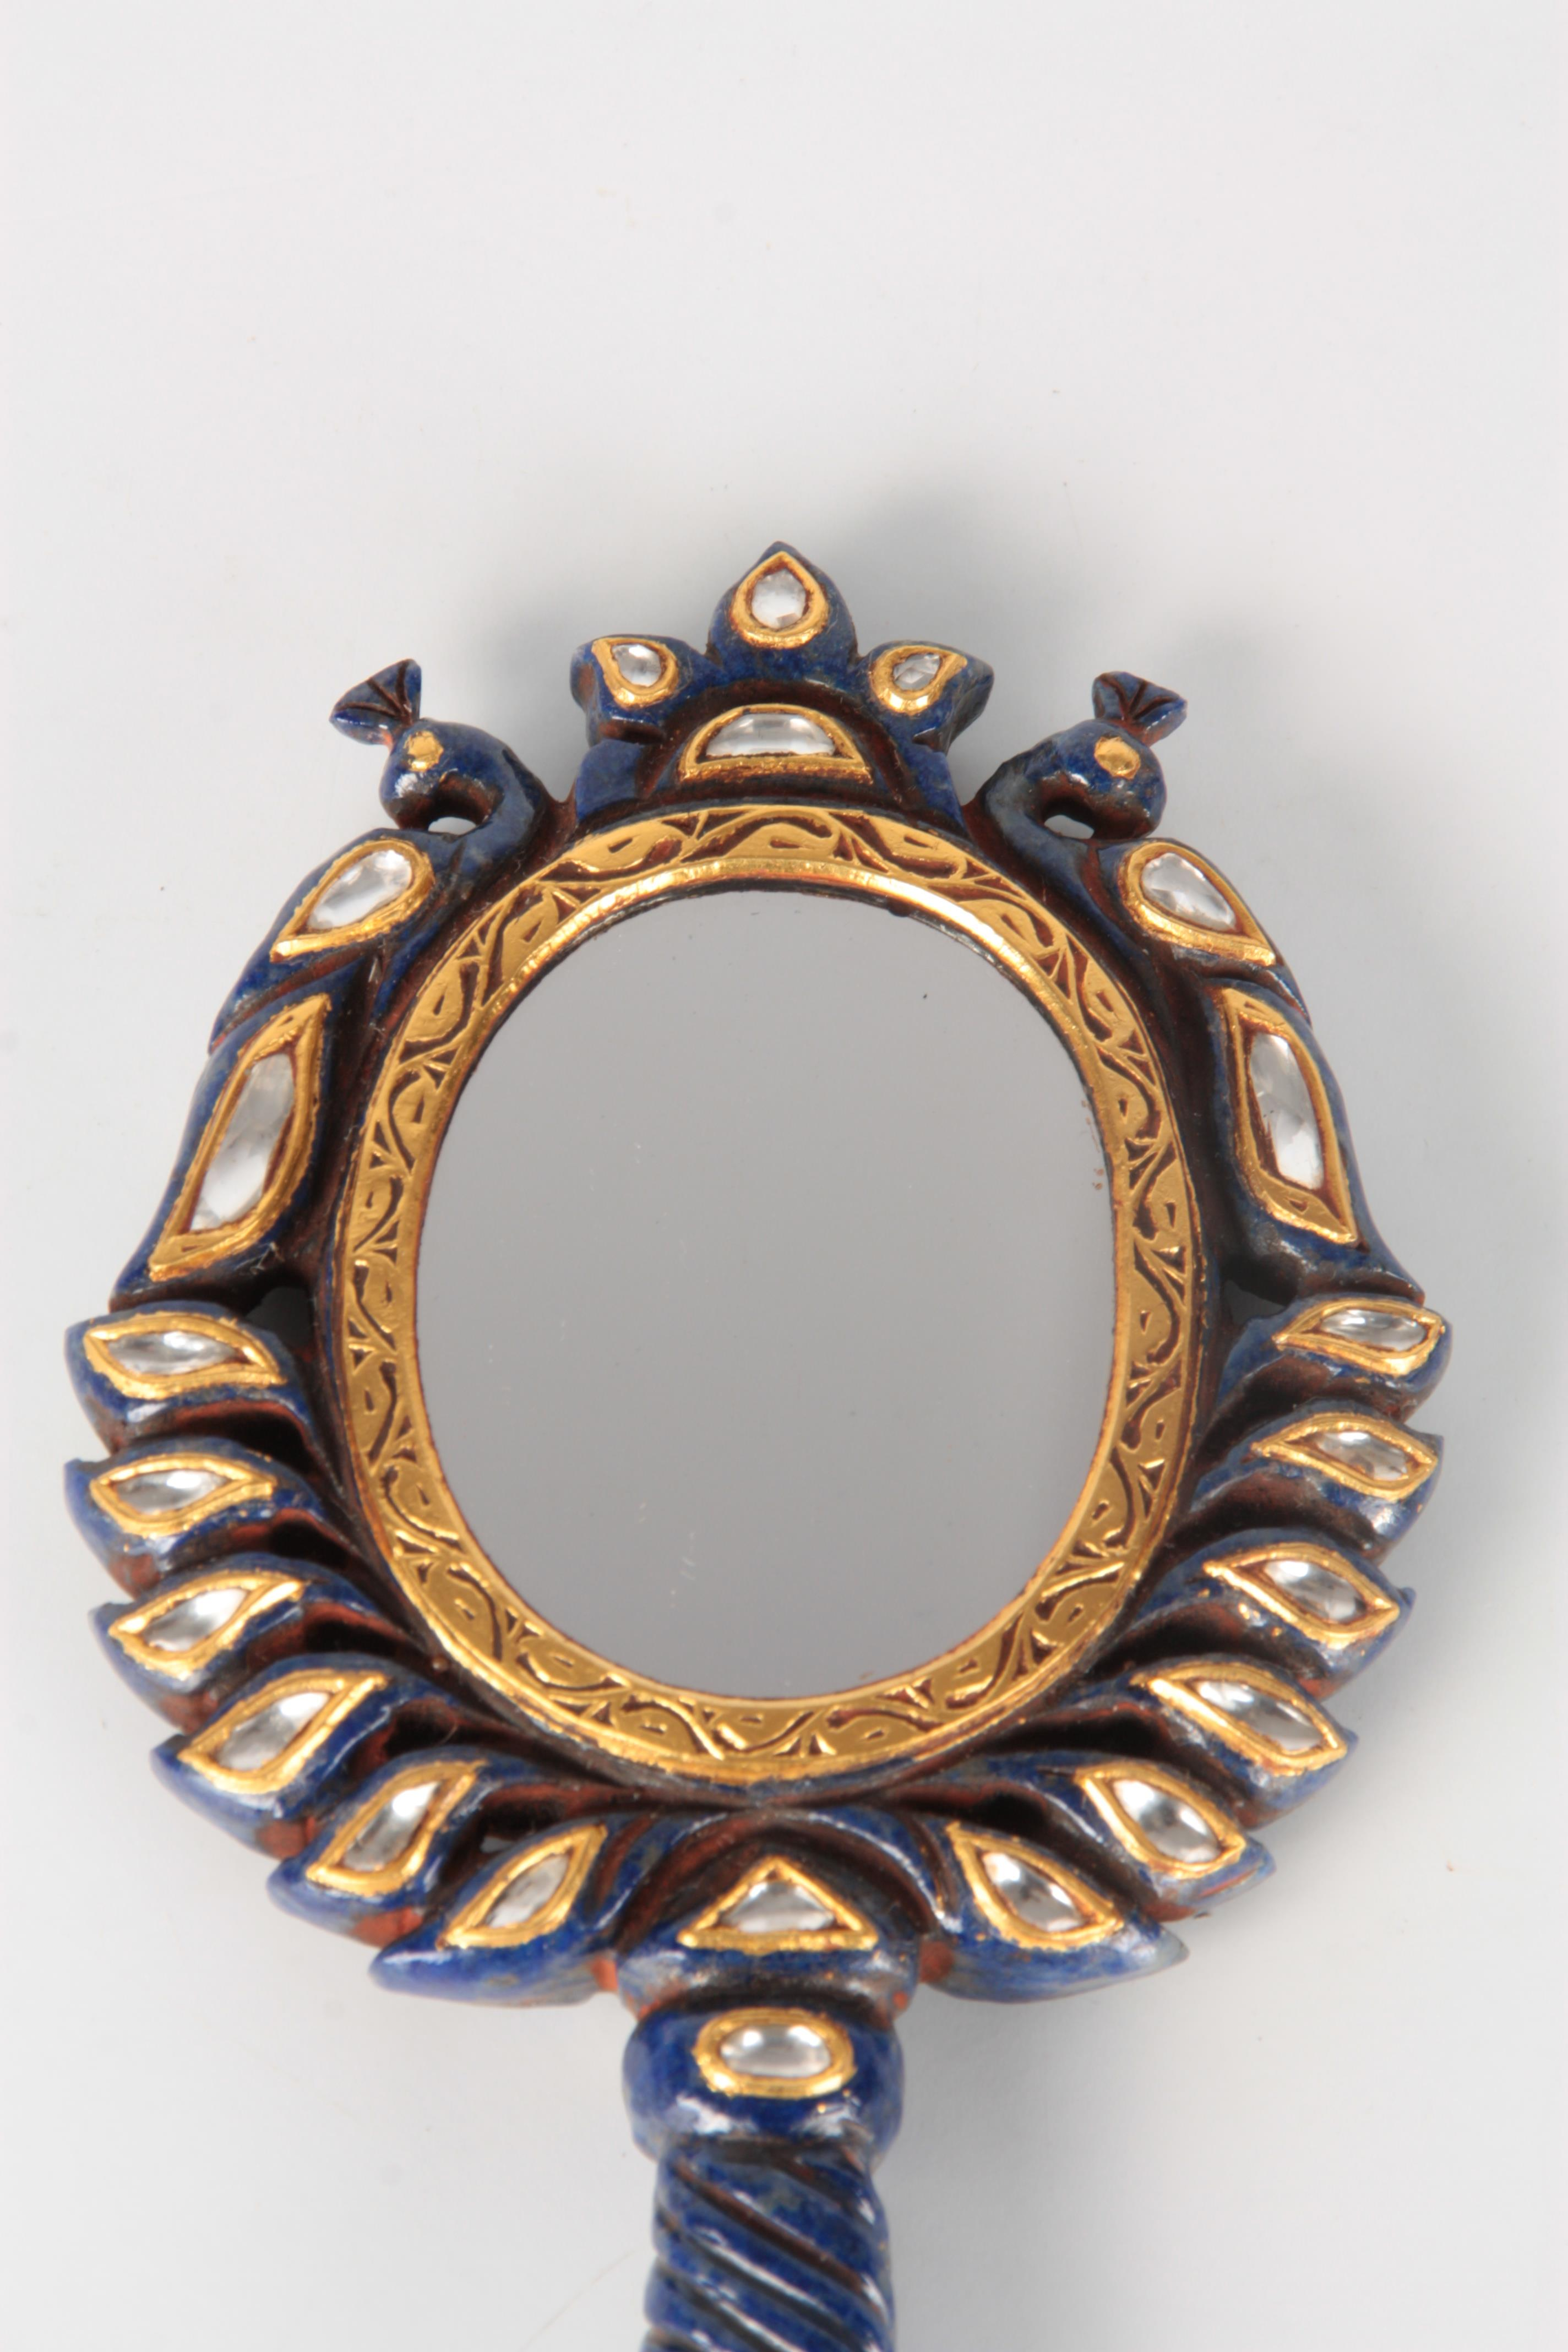 AN 20TH CENTURY LAPIS LAZULI AND DIAMOND SET CARVED HAND MIRROR the peacock and twisted handle - Image 2 of 6